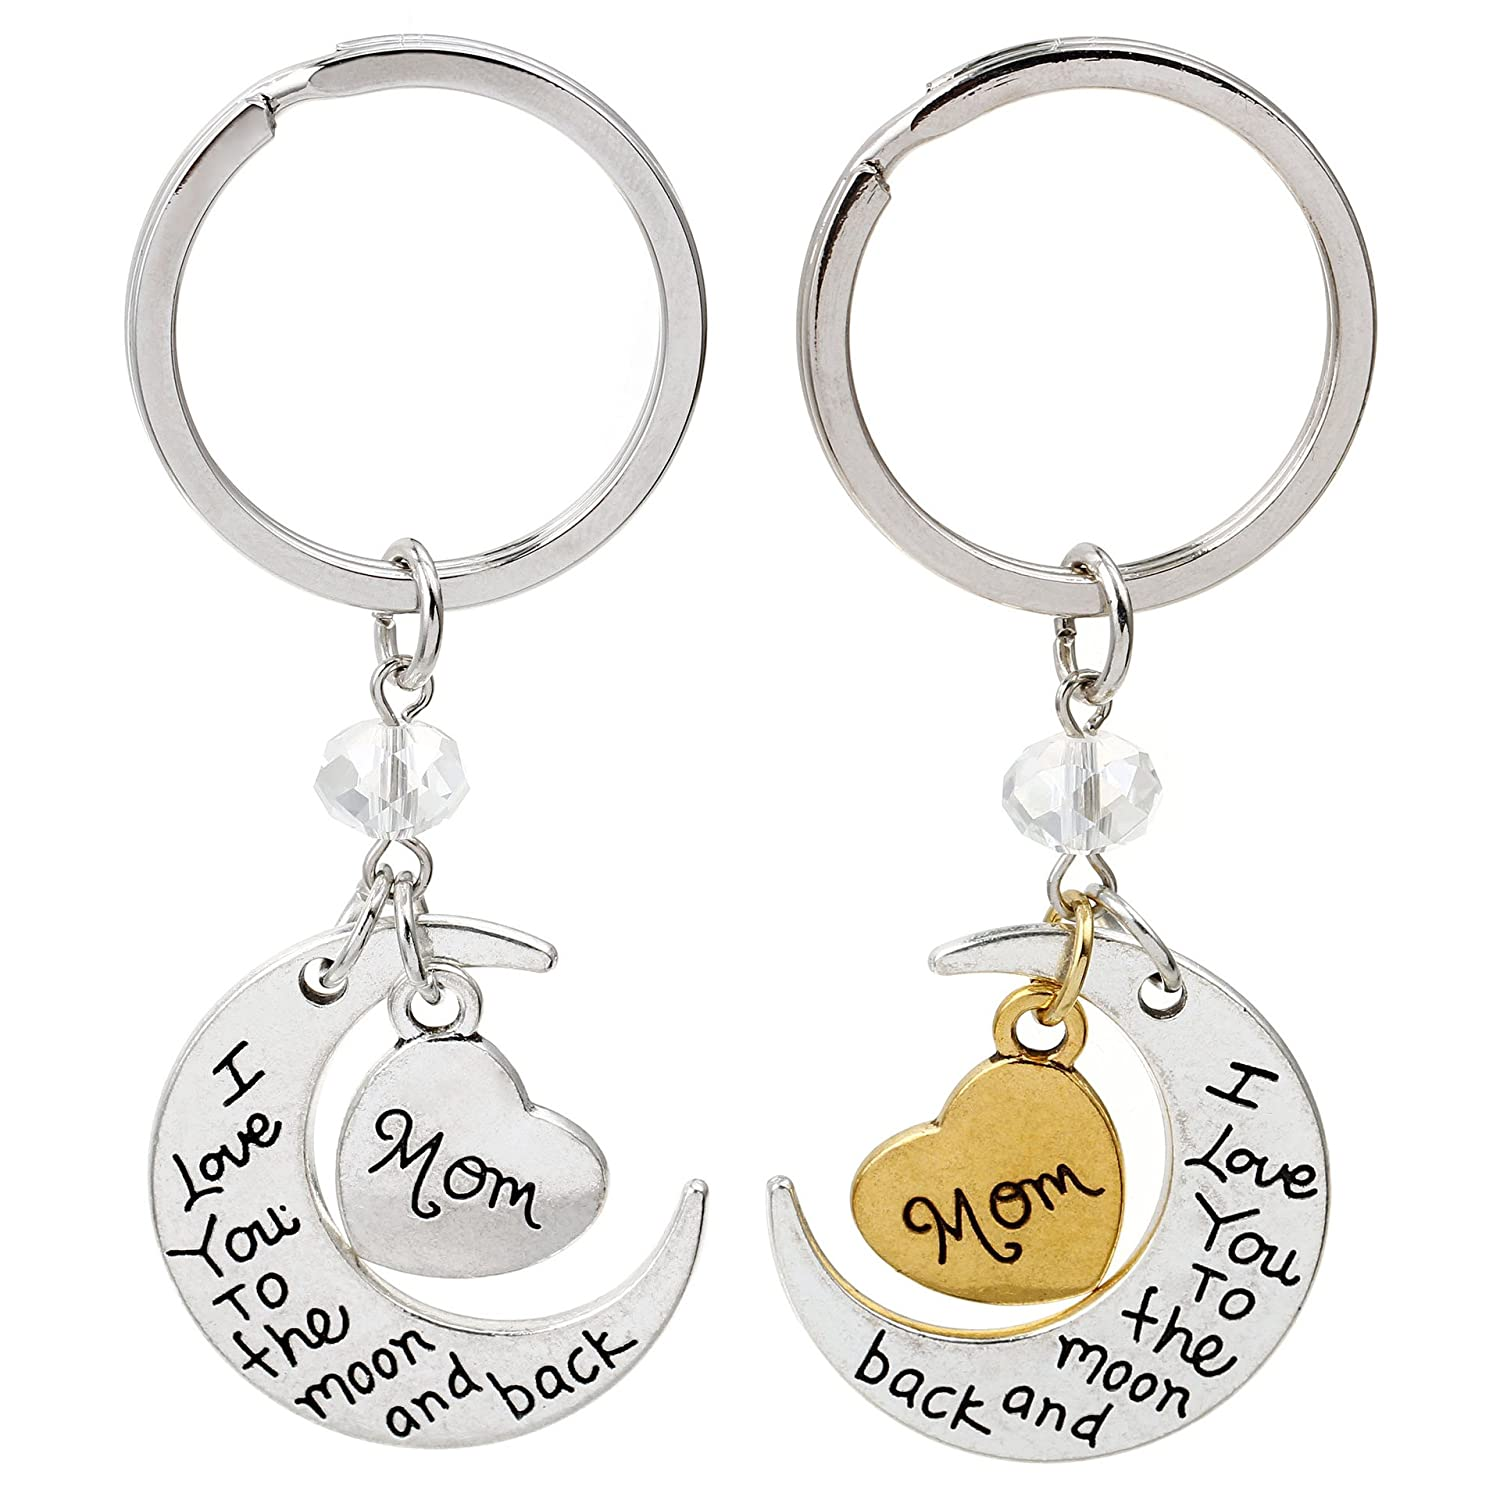 Loving Heart Moon Metal Alloy Key Chain,2-Pack Jzcky Shzrp I Love You to The Moon and Back Inspirational Messaged Fashion Keychain Pendants